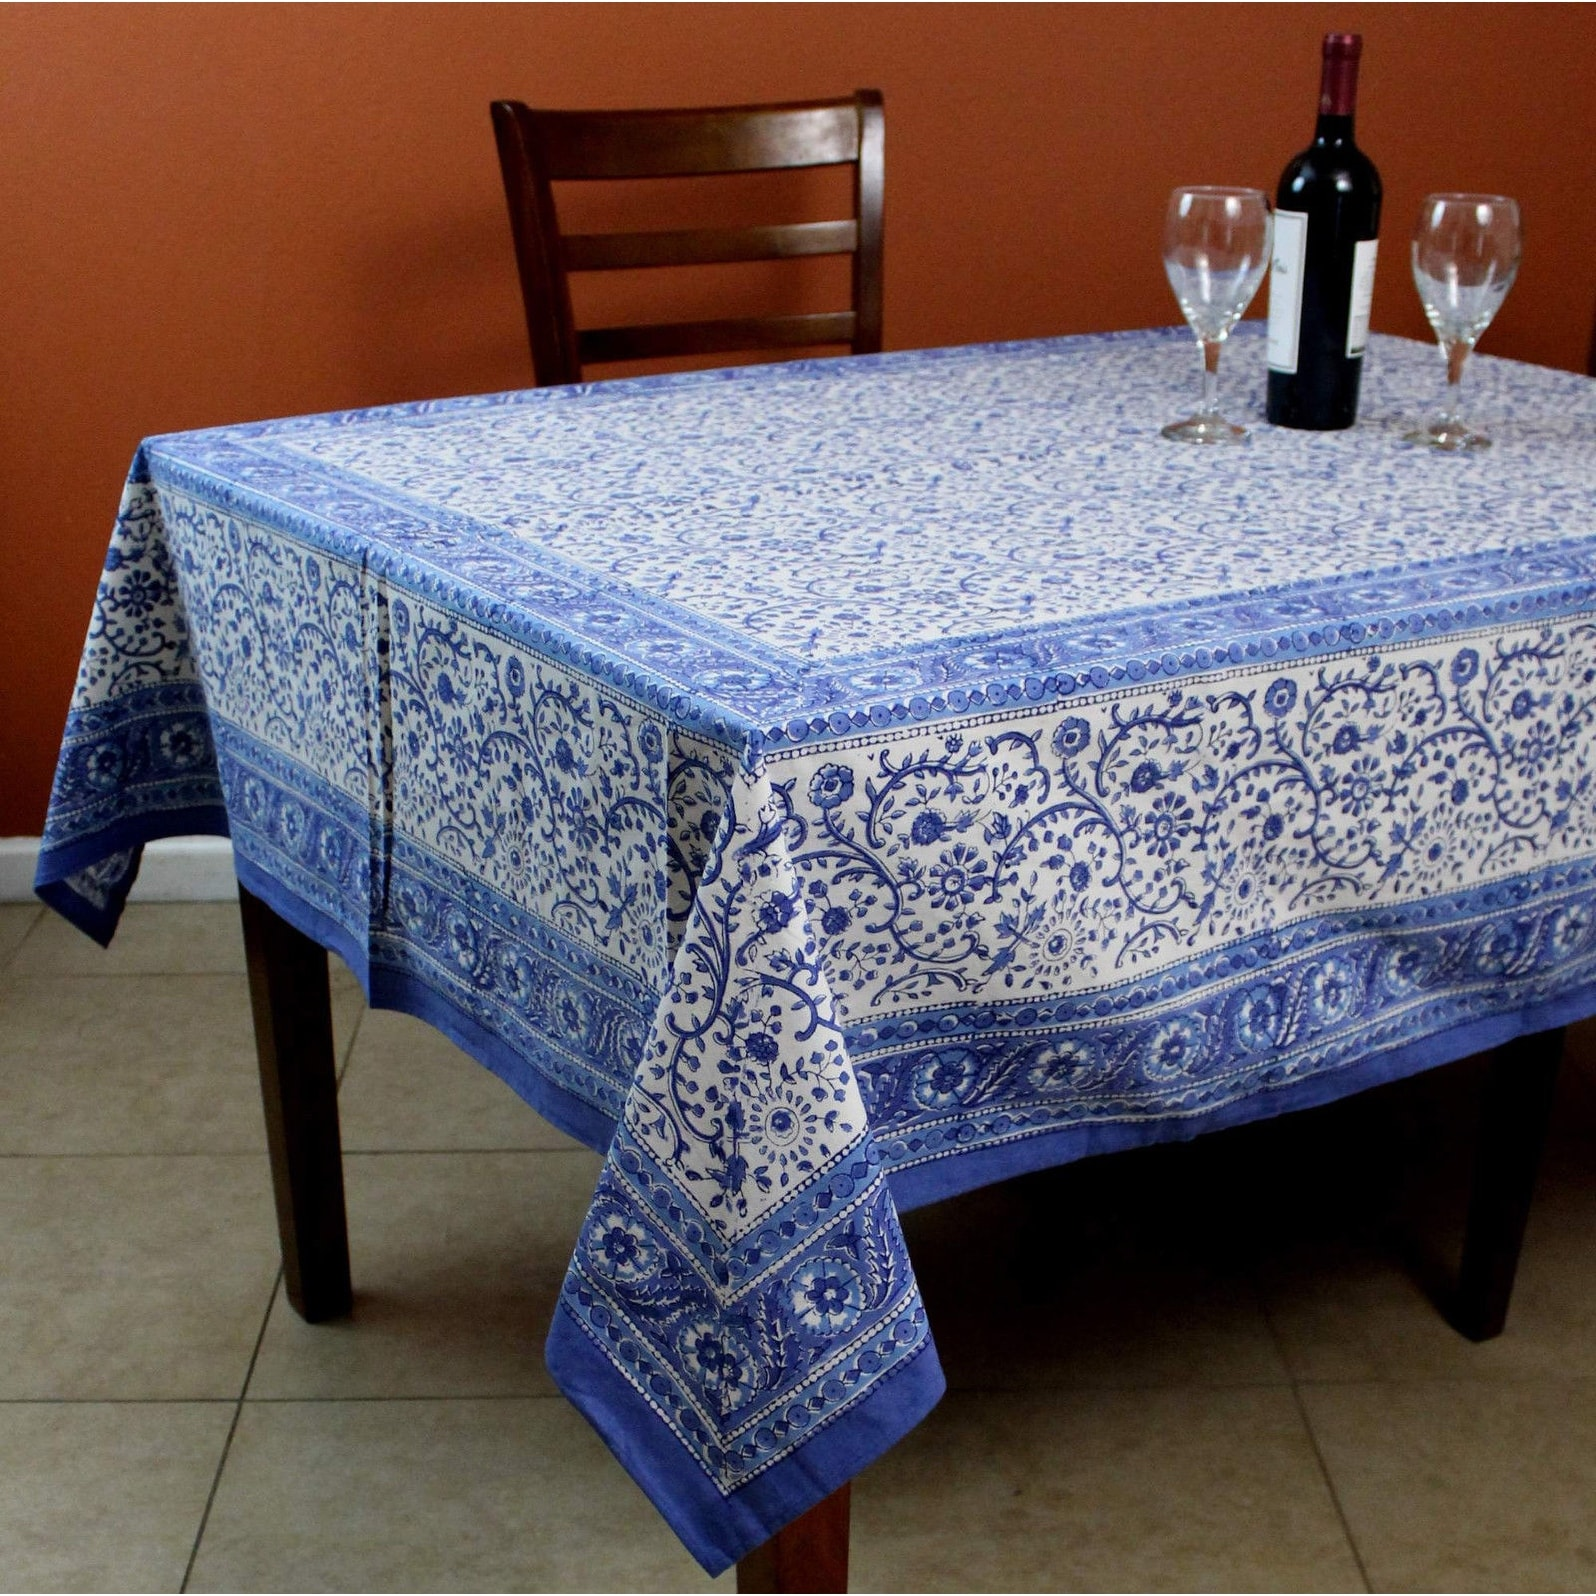 rajasthan block print floral round tablecloth rectangular cotton table napkins placemats runner accent free shipping orders over farmhouse door unwanted furniture southern